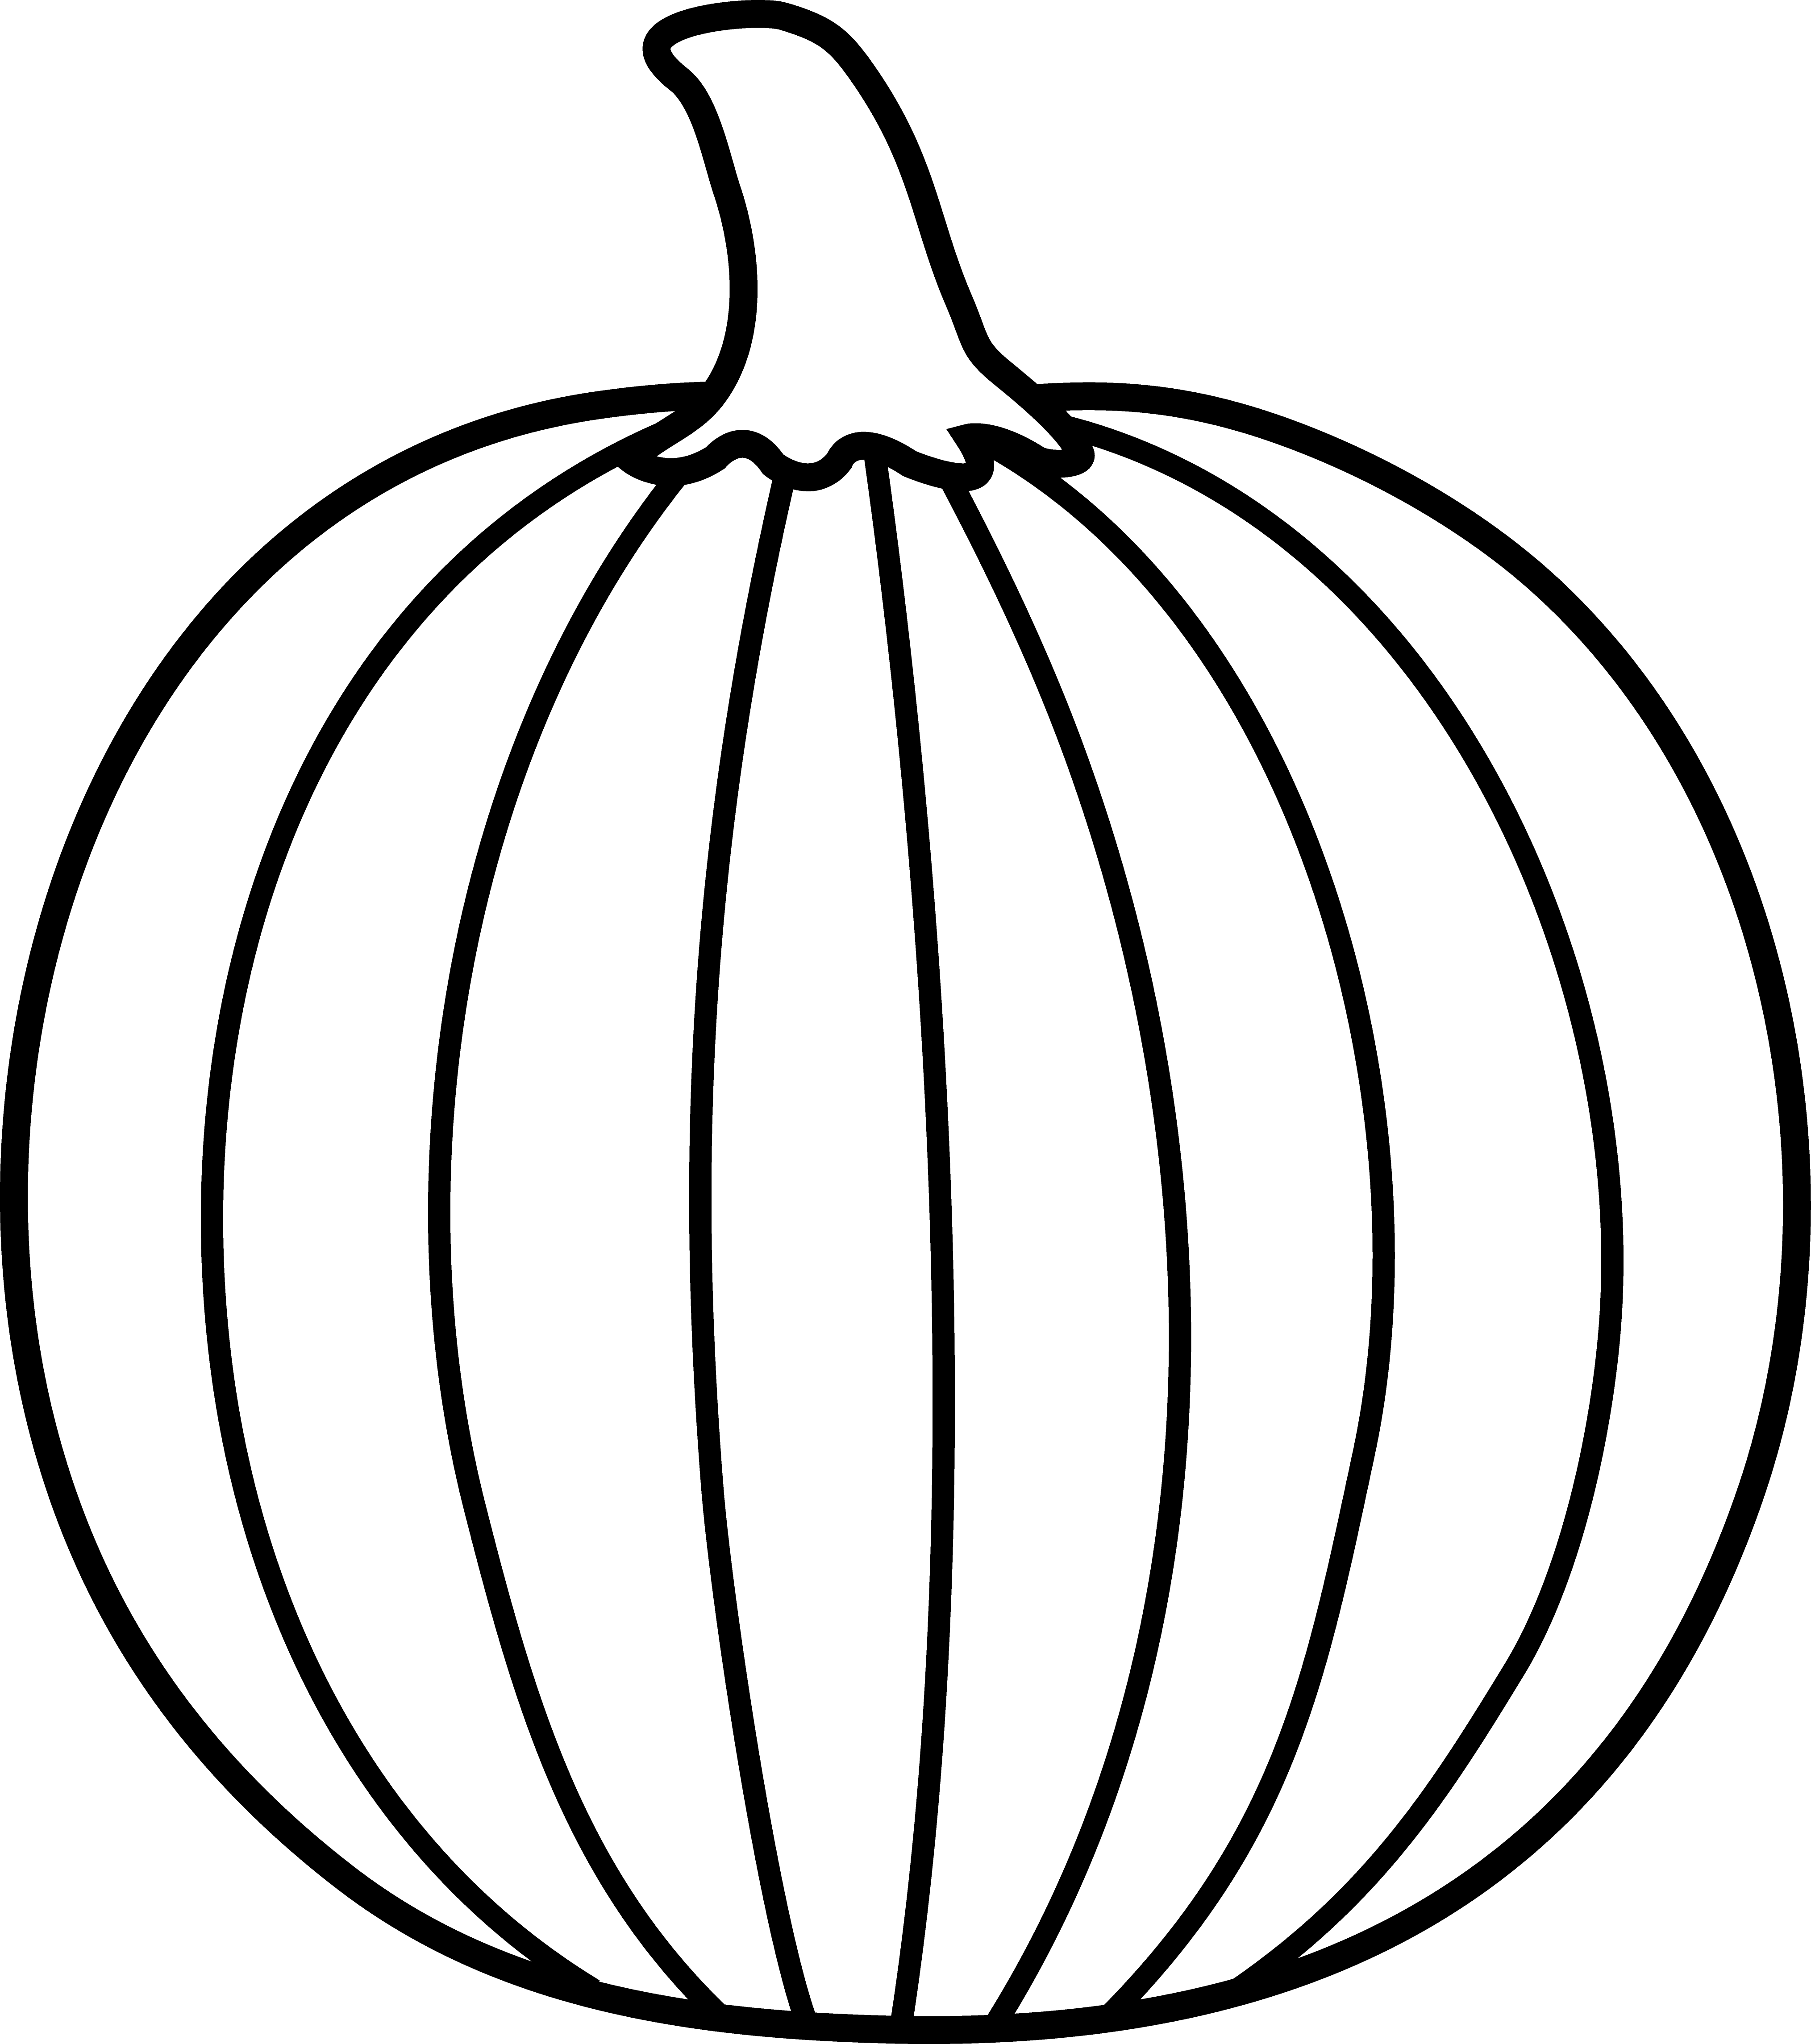 Black and white pumpkins clipart clip library library Pumpkin Outline Printable | Clipart Panda - Free Clipart Images ... clip library library